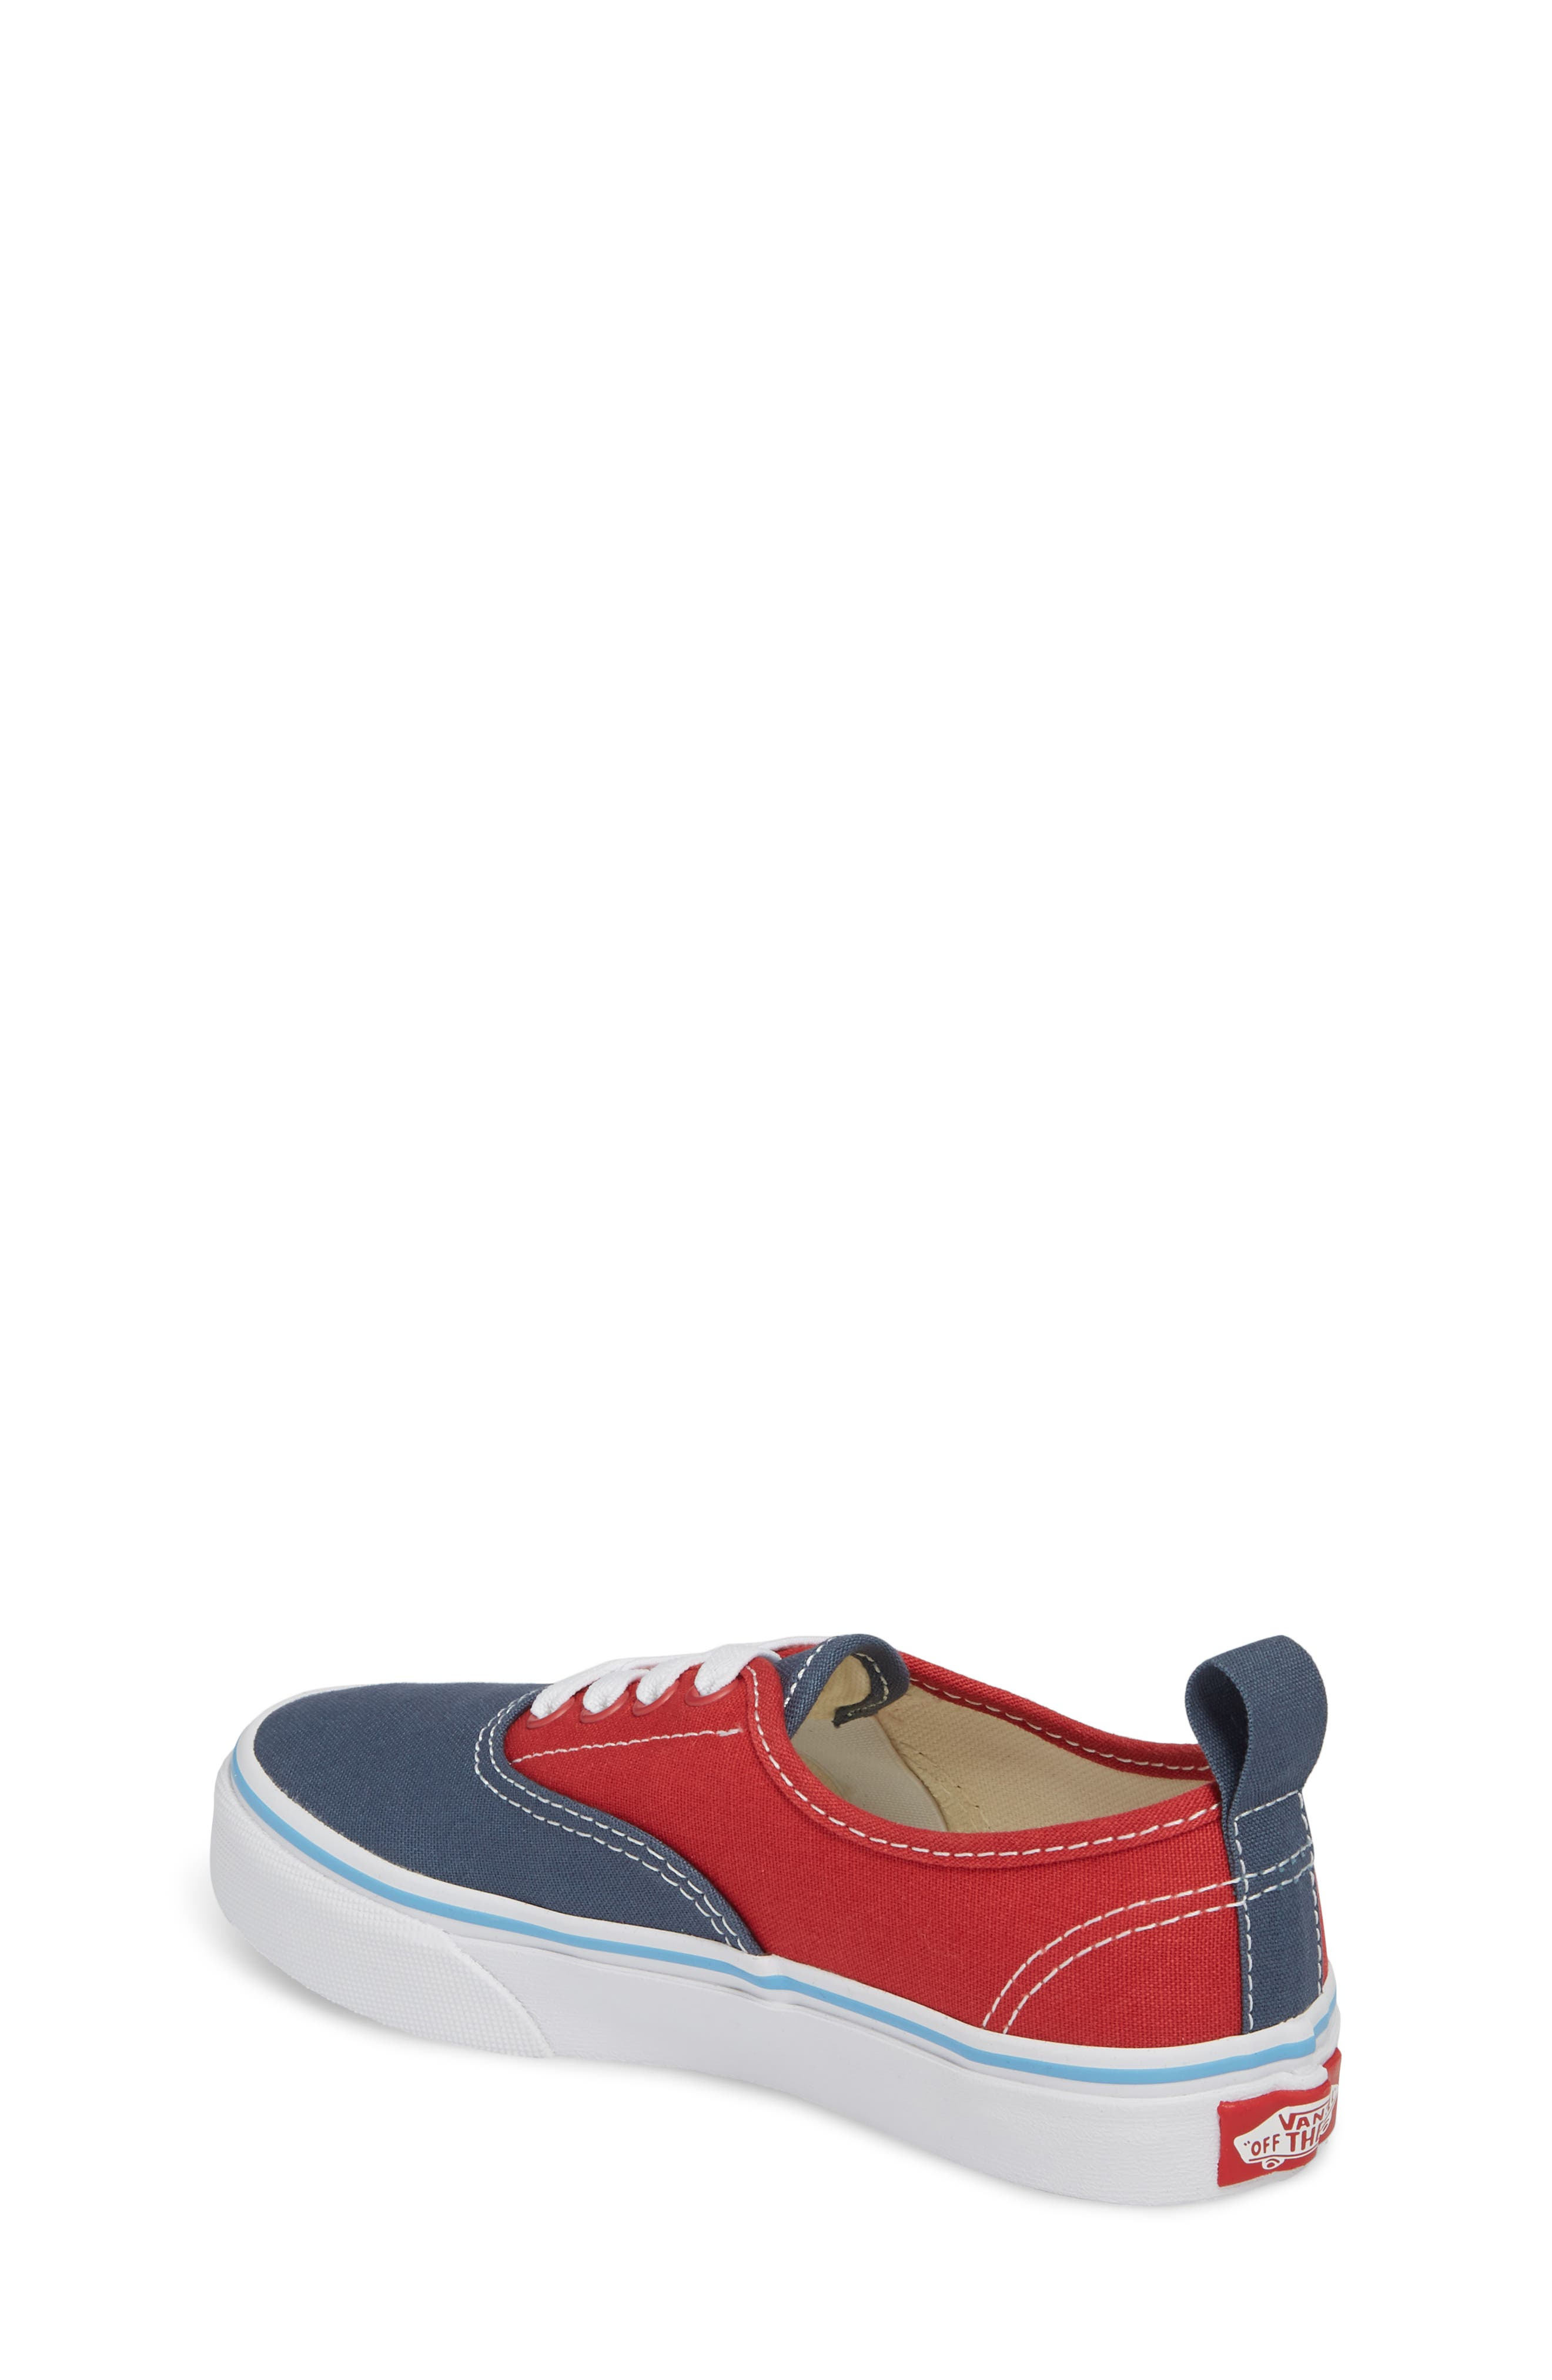 Authentic Low Top Sneaker,                             Alternate thumbnail 2, color,                             420